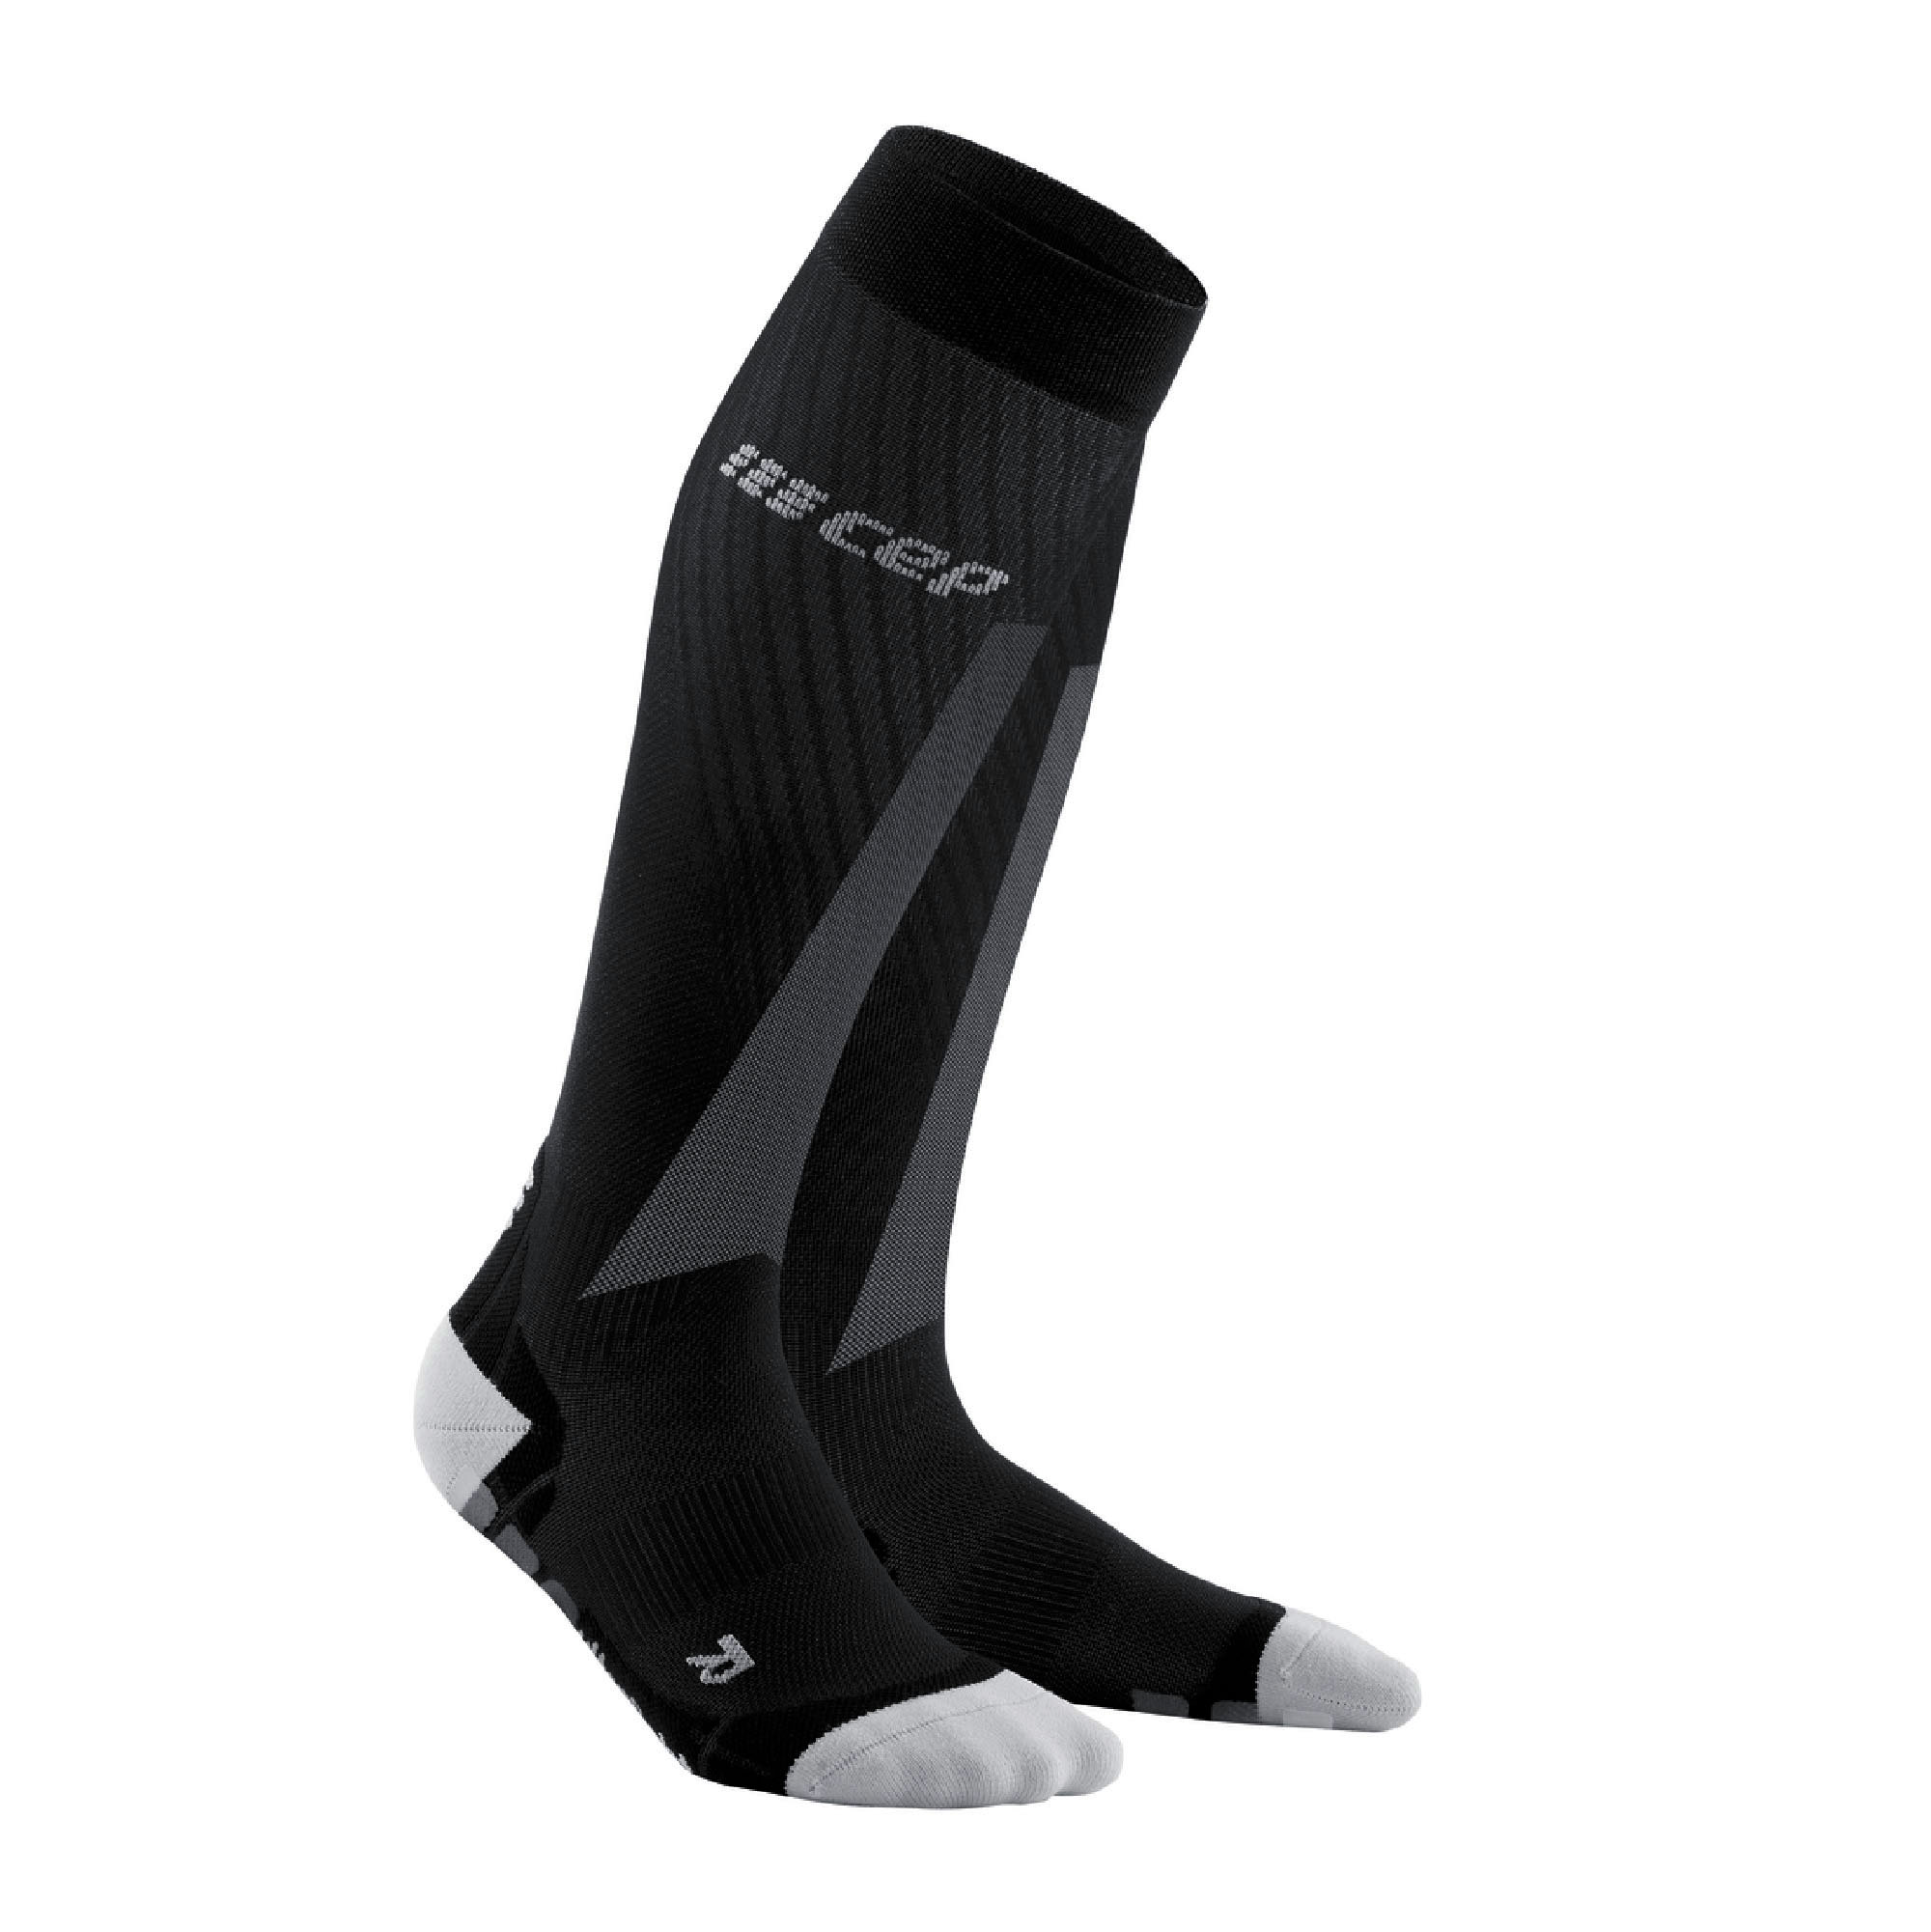 ULTRALIGHT PRO SOCKS | WOMEN